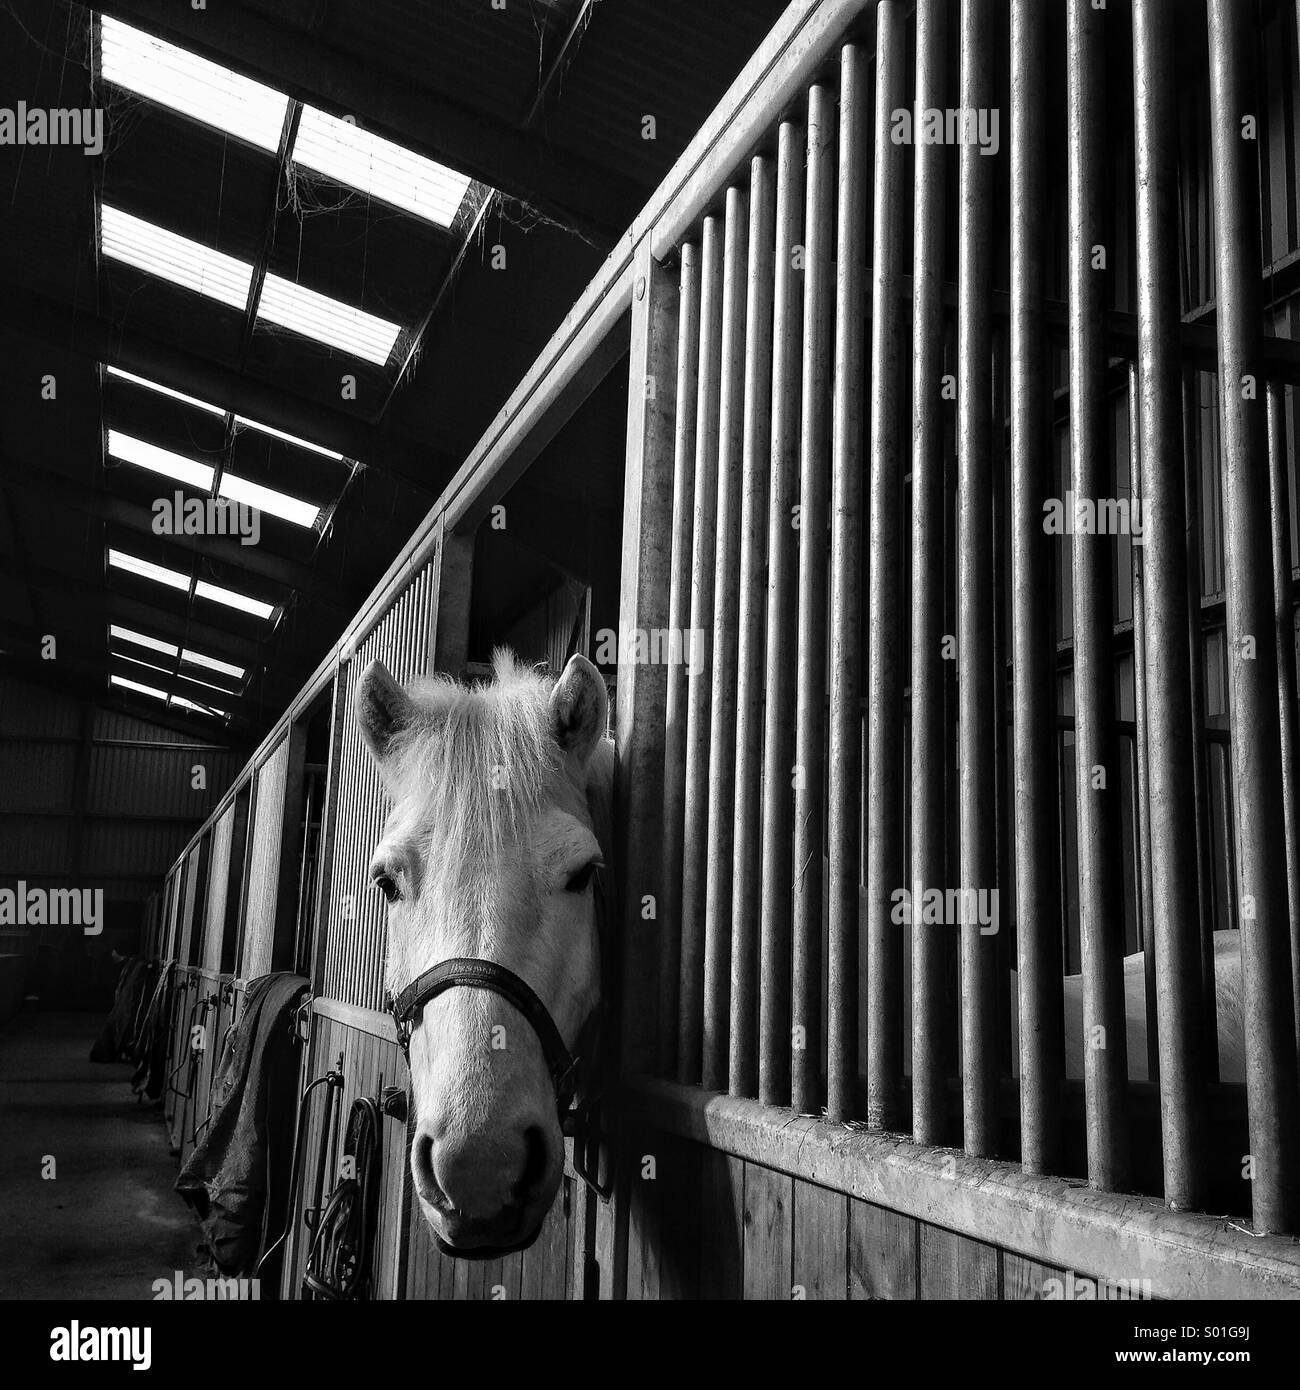 Horse looking out of a stable - Stock Image